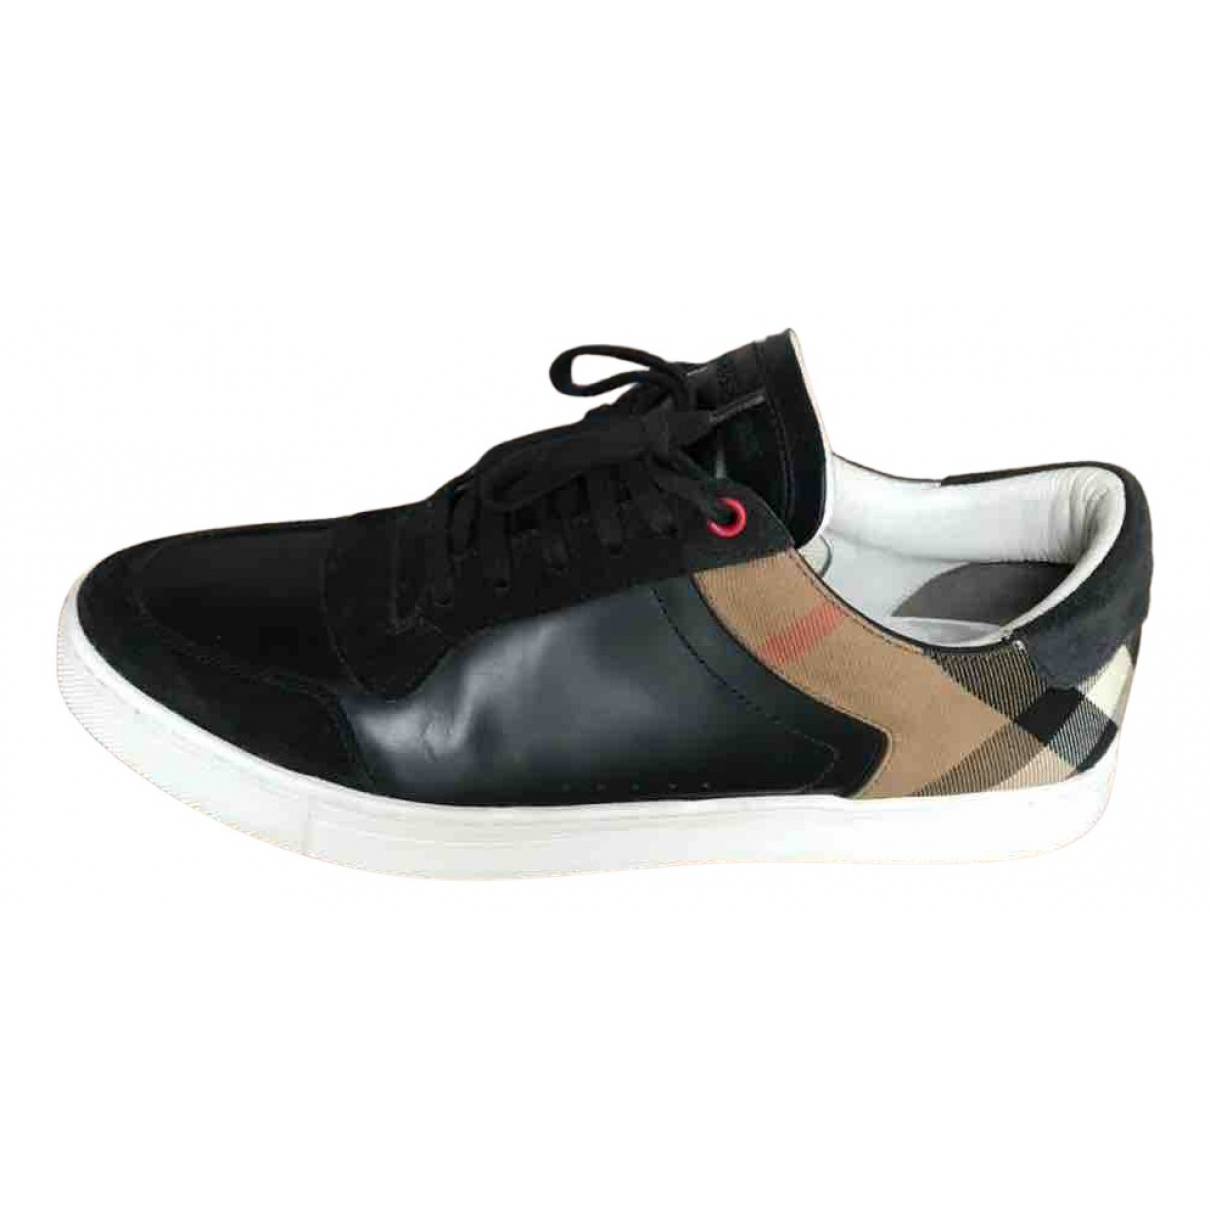 Burberry N Black Leather Trainers for Men 45 EU